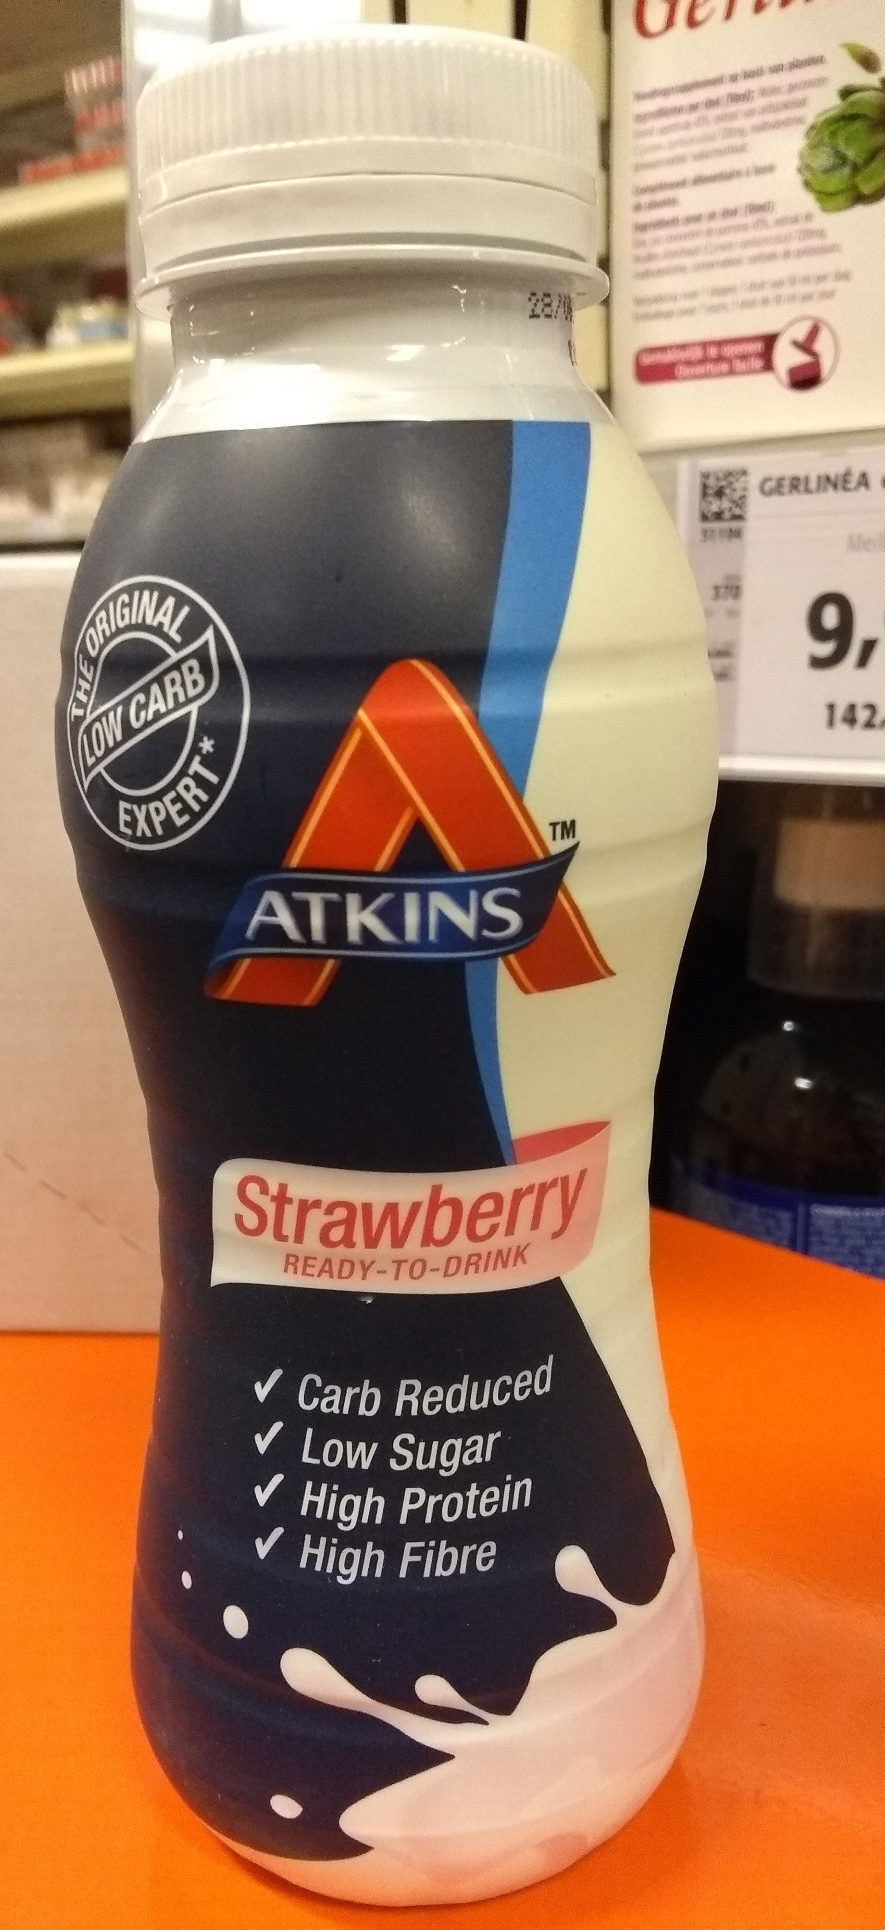 Atkins Strawnerry - Product - fr